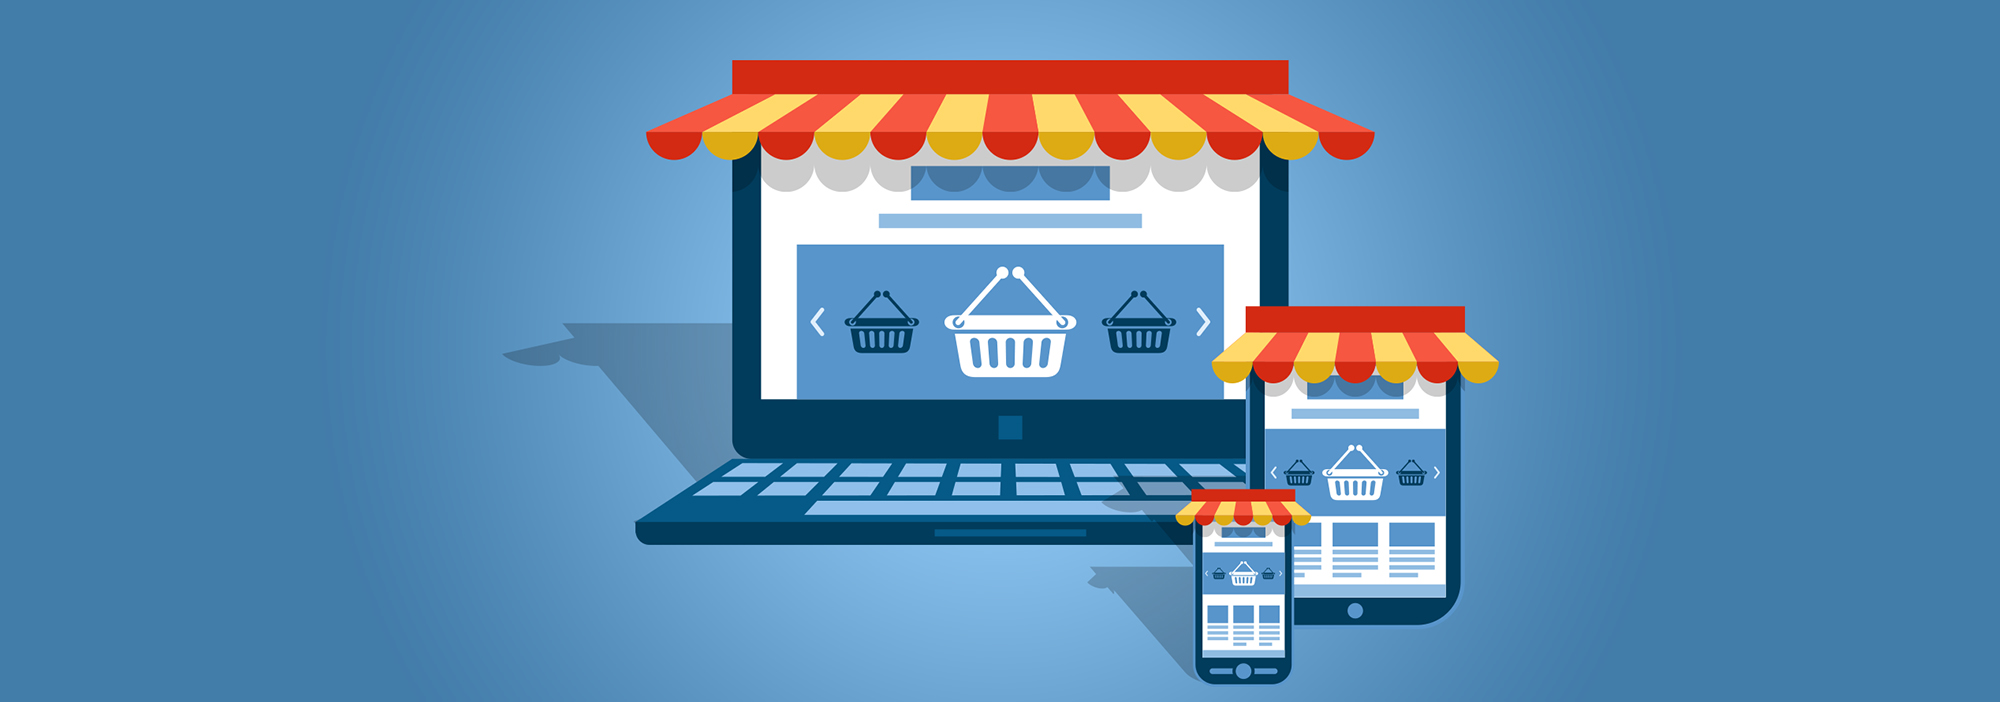 Ecommerce seo made very simple